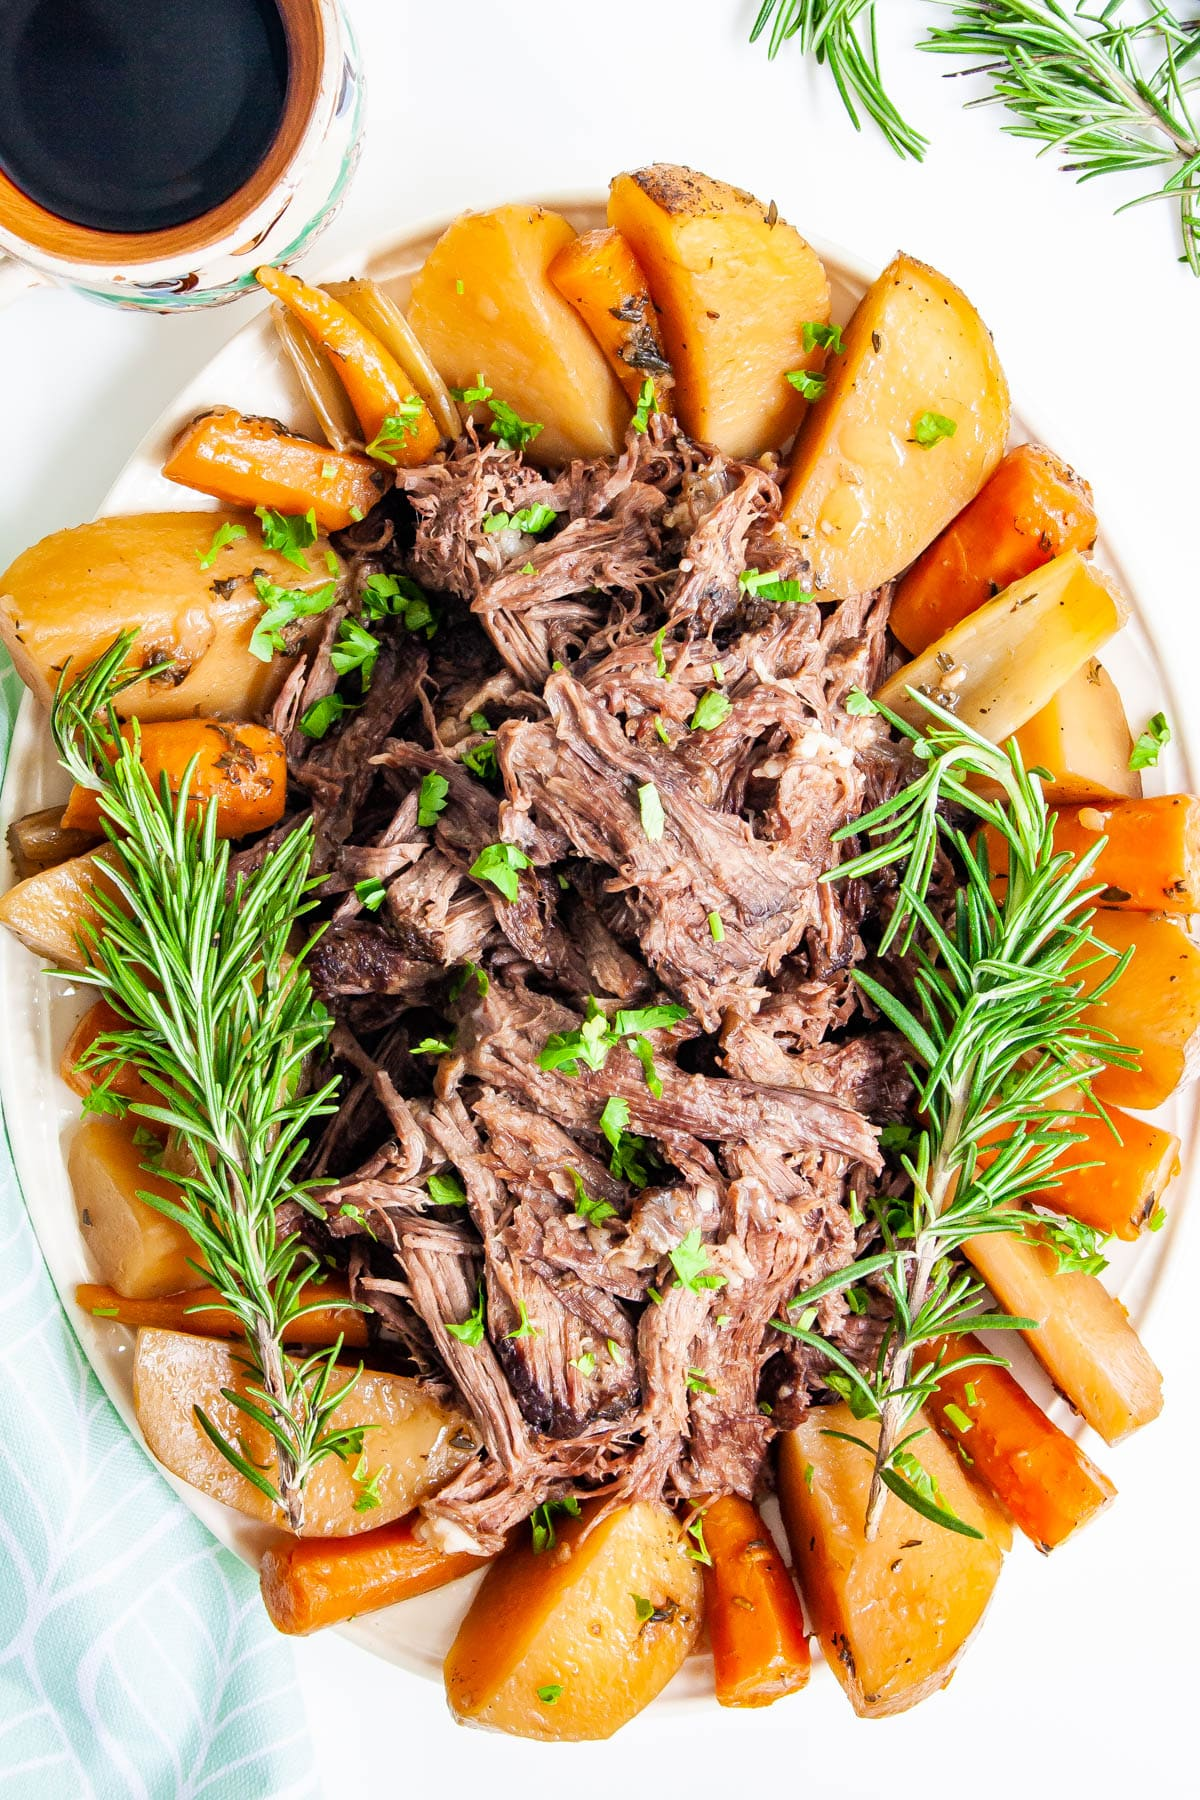 overhead shot of a platter of shredded pot roast with potatoes and carrots